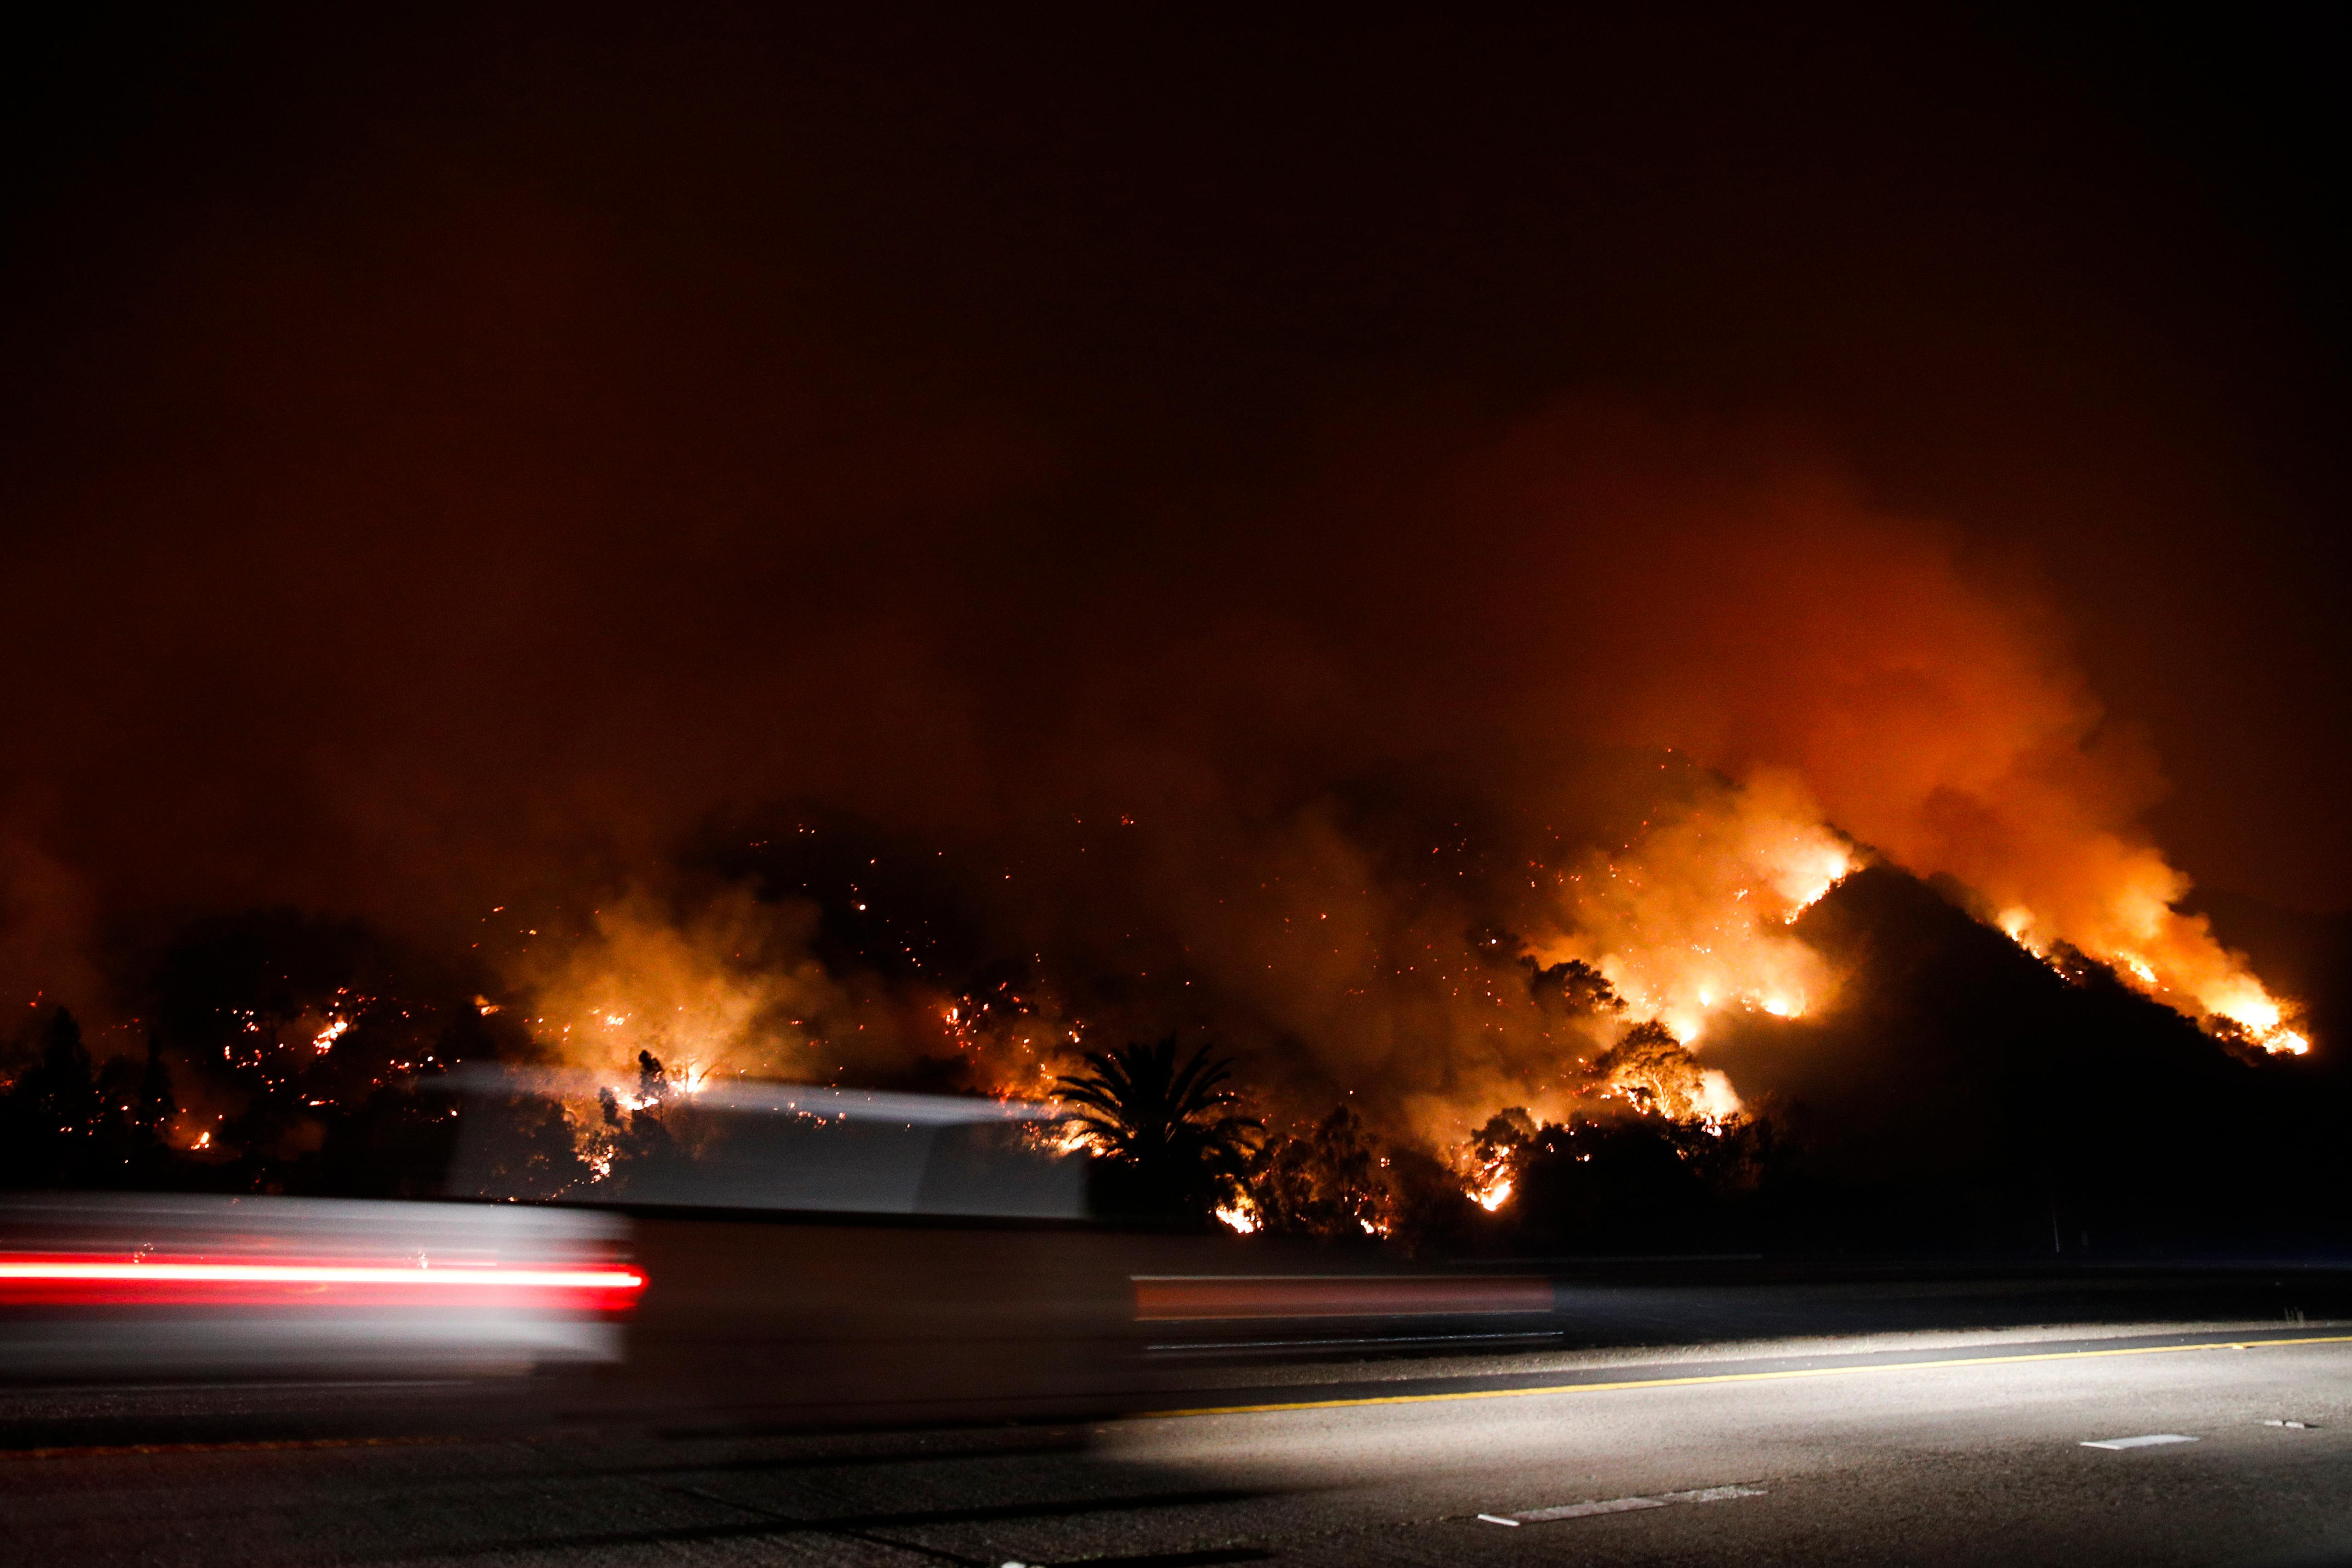 Traffic moves along the Highway 33 as a wildfires continues to burn Tuesday, Dec. 5, 2017, near Oak View, Calif. Raked by ferocious Santa Ana winds, explosive wildfires northwest of Los Angeles and in the city's foothills burned a psychiatric hospital and scores of homes and other structures Tuesday and forced the evacuation of tens of thousands of people. (AP Photo/Jae C. Hong)